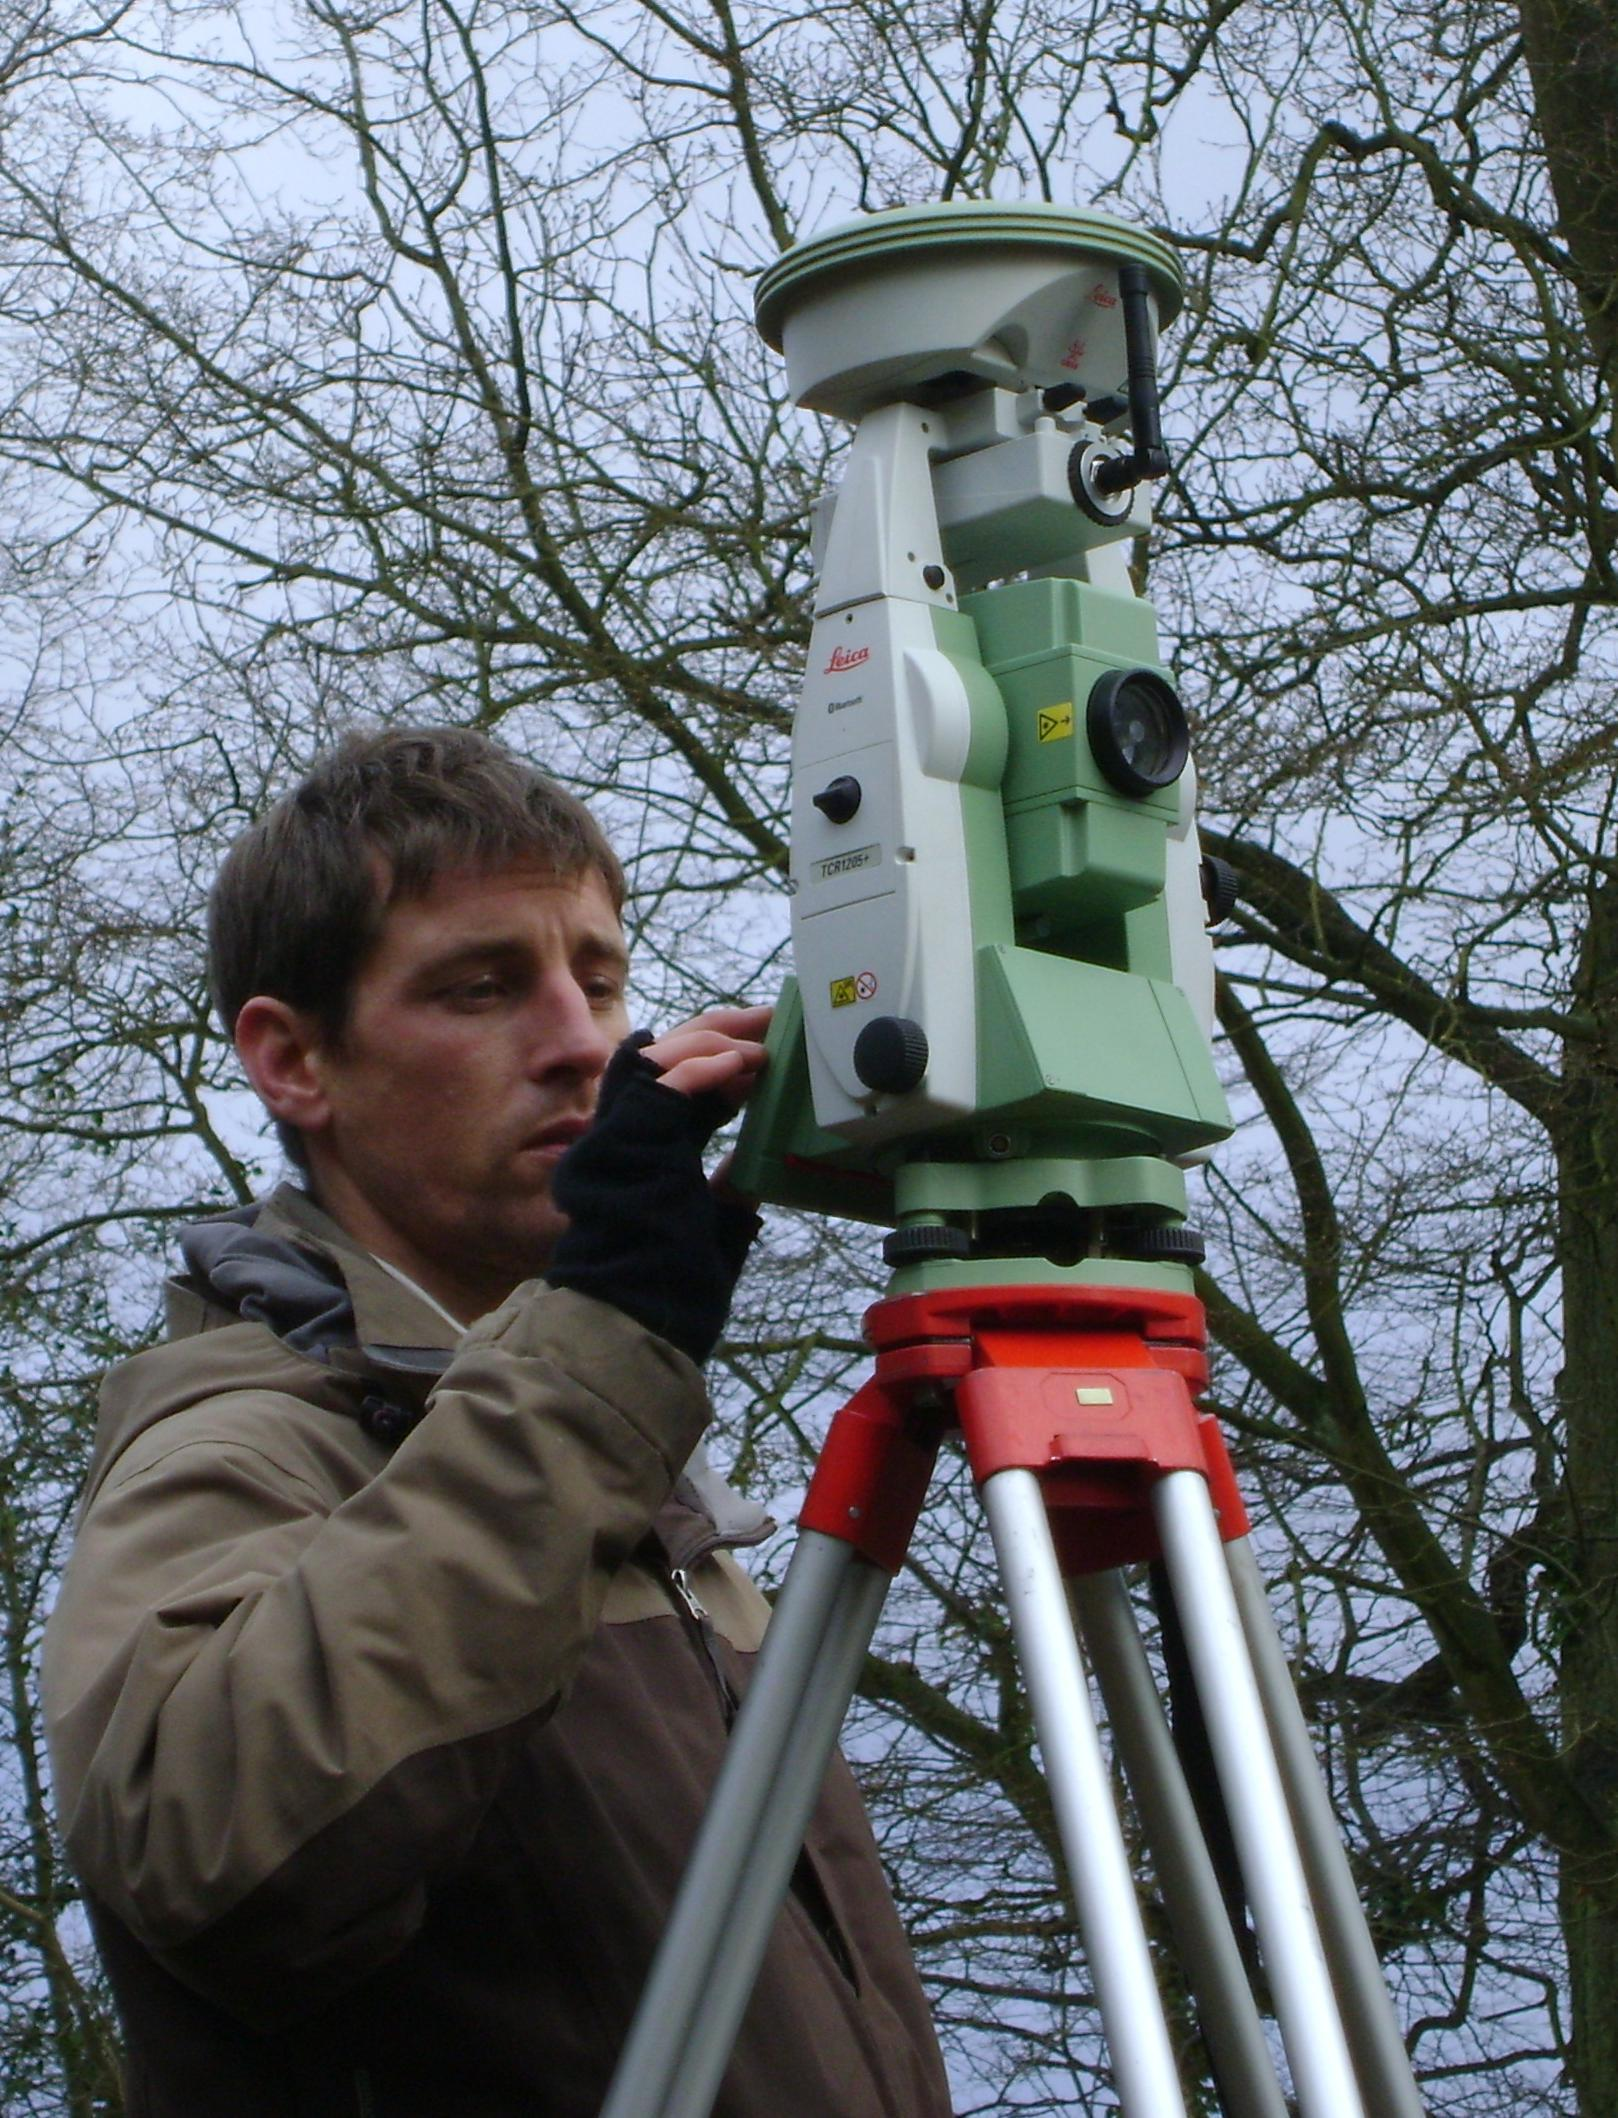 GPS surveyor